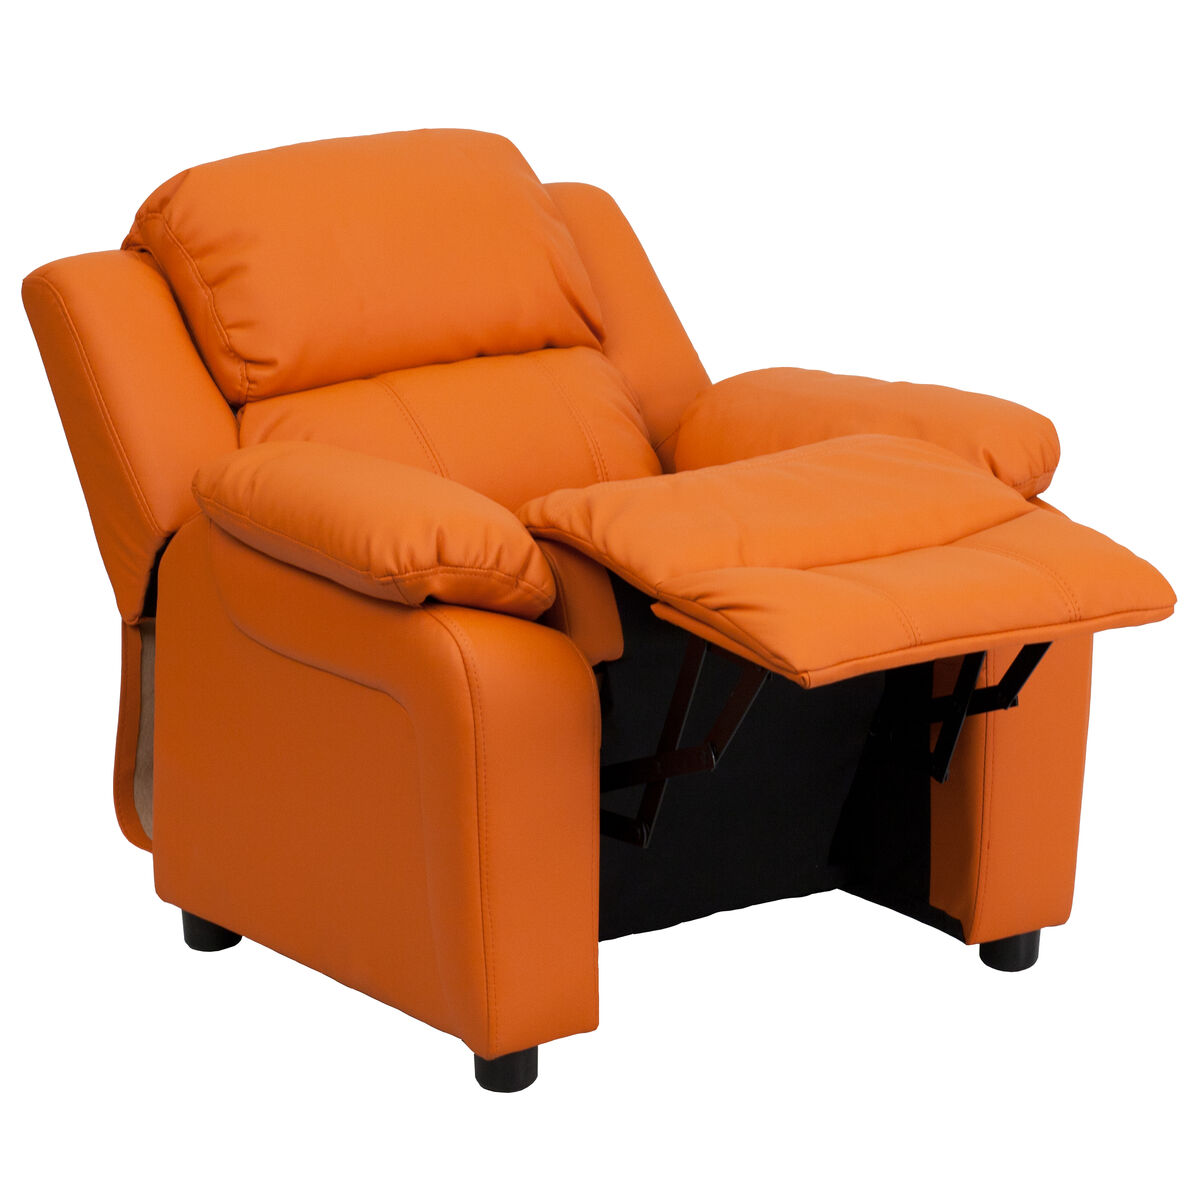 Deluxe Padded Contemporary Orange Vinyl Kids Recliner With